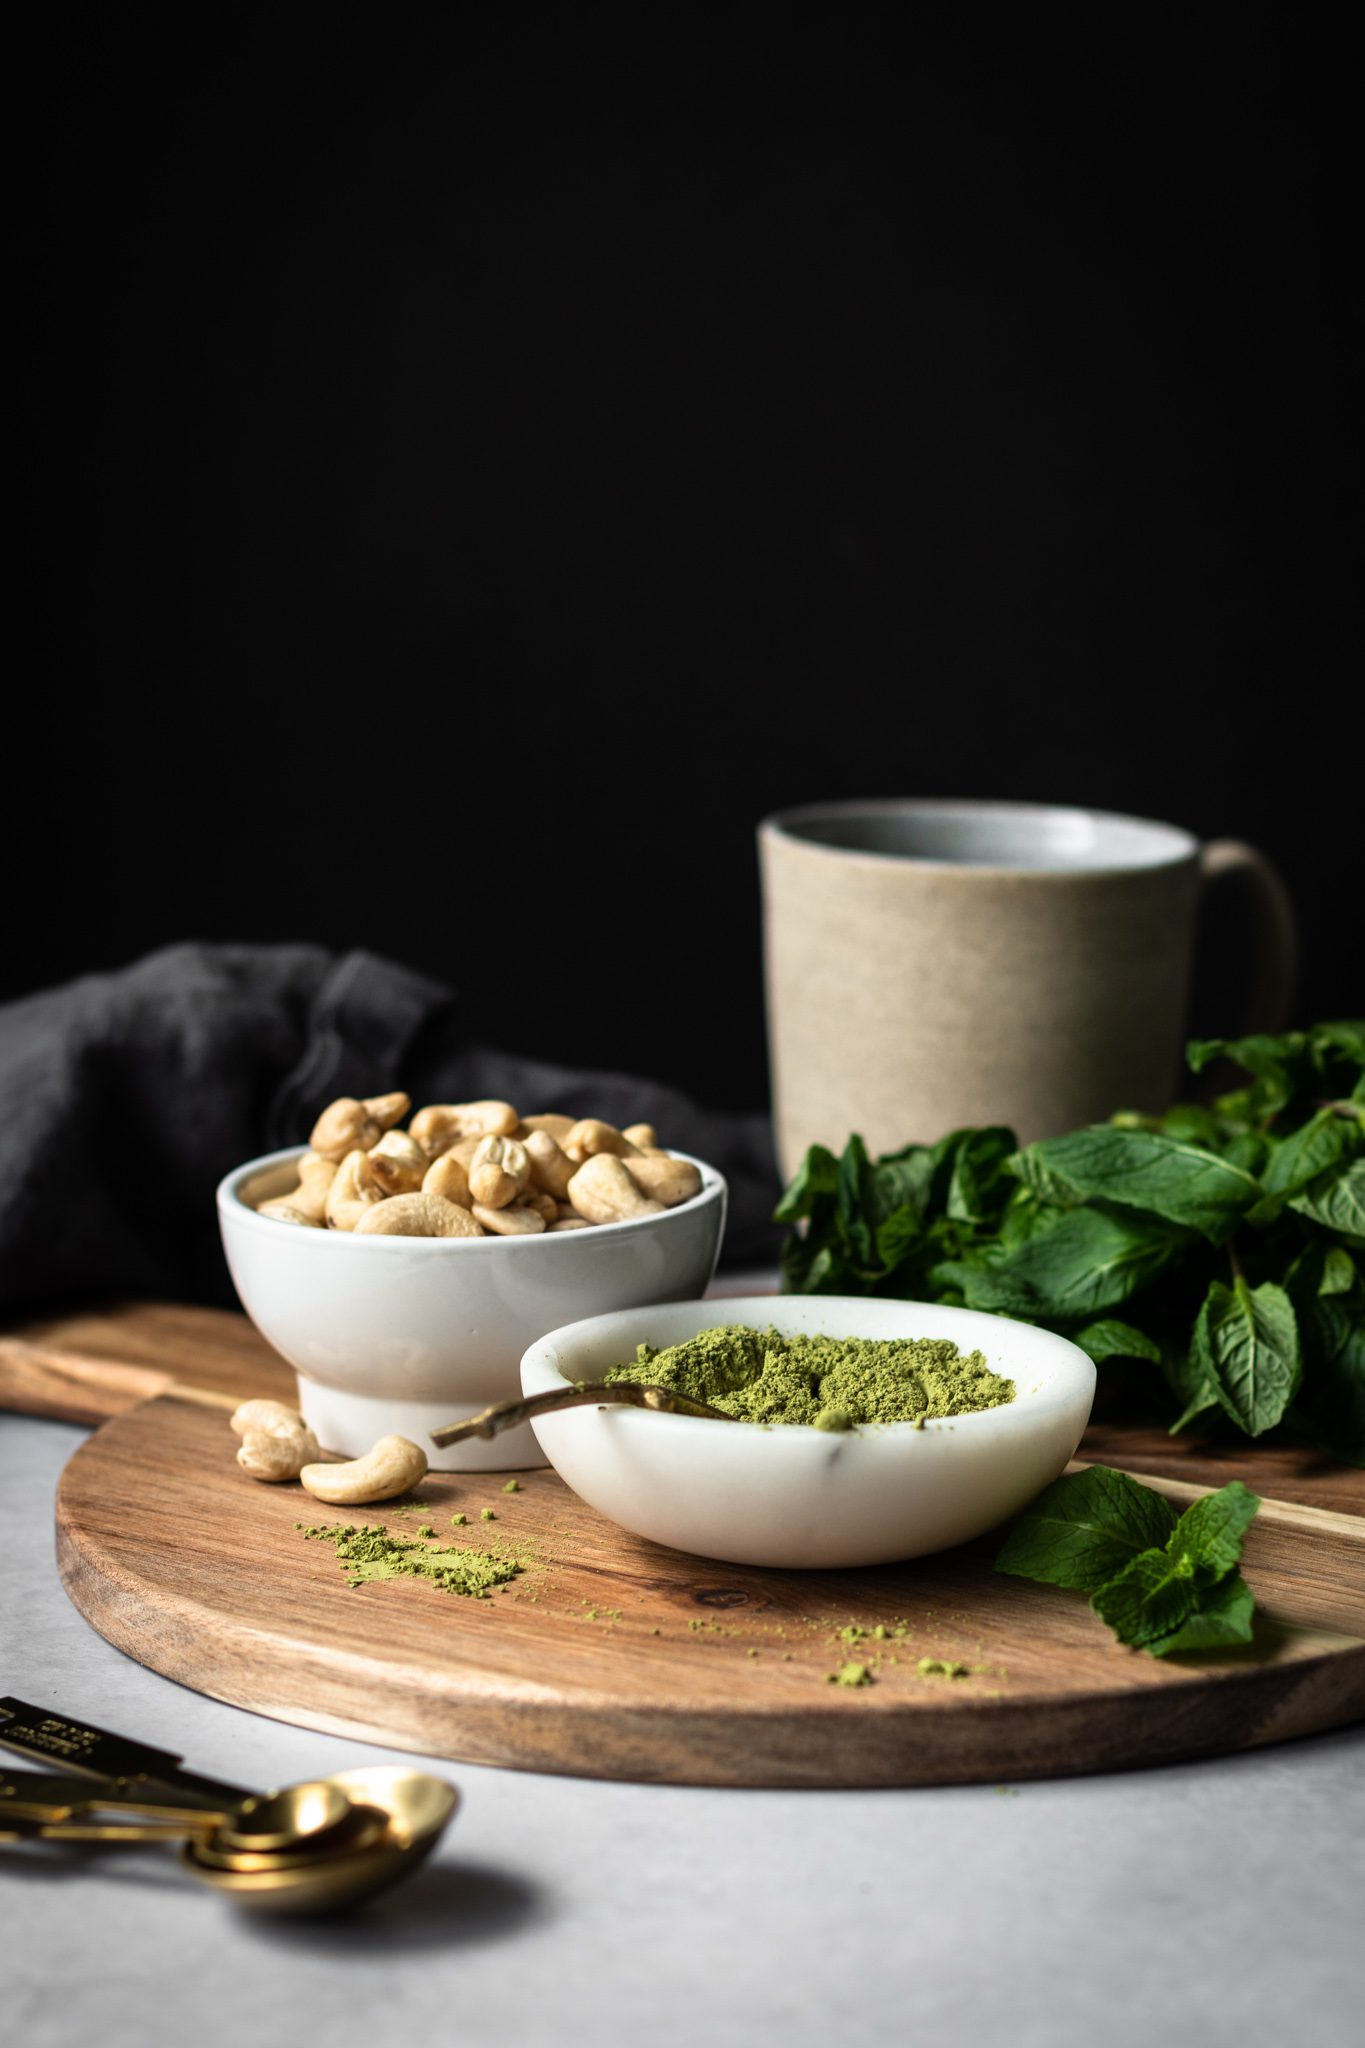 matcha, cashews and mint leaves from the side